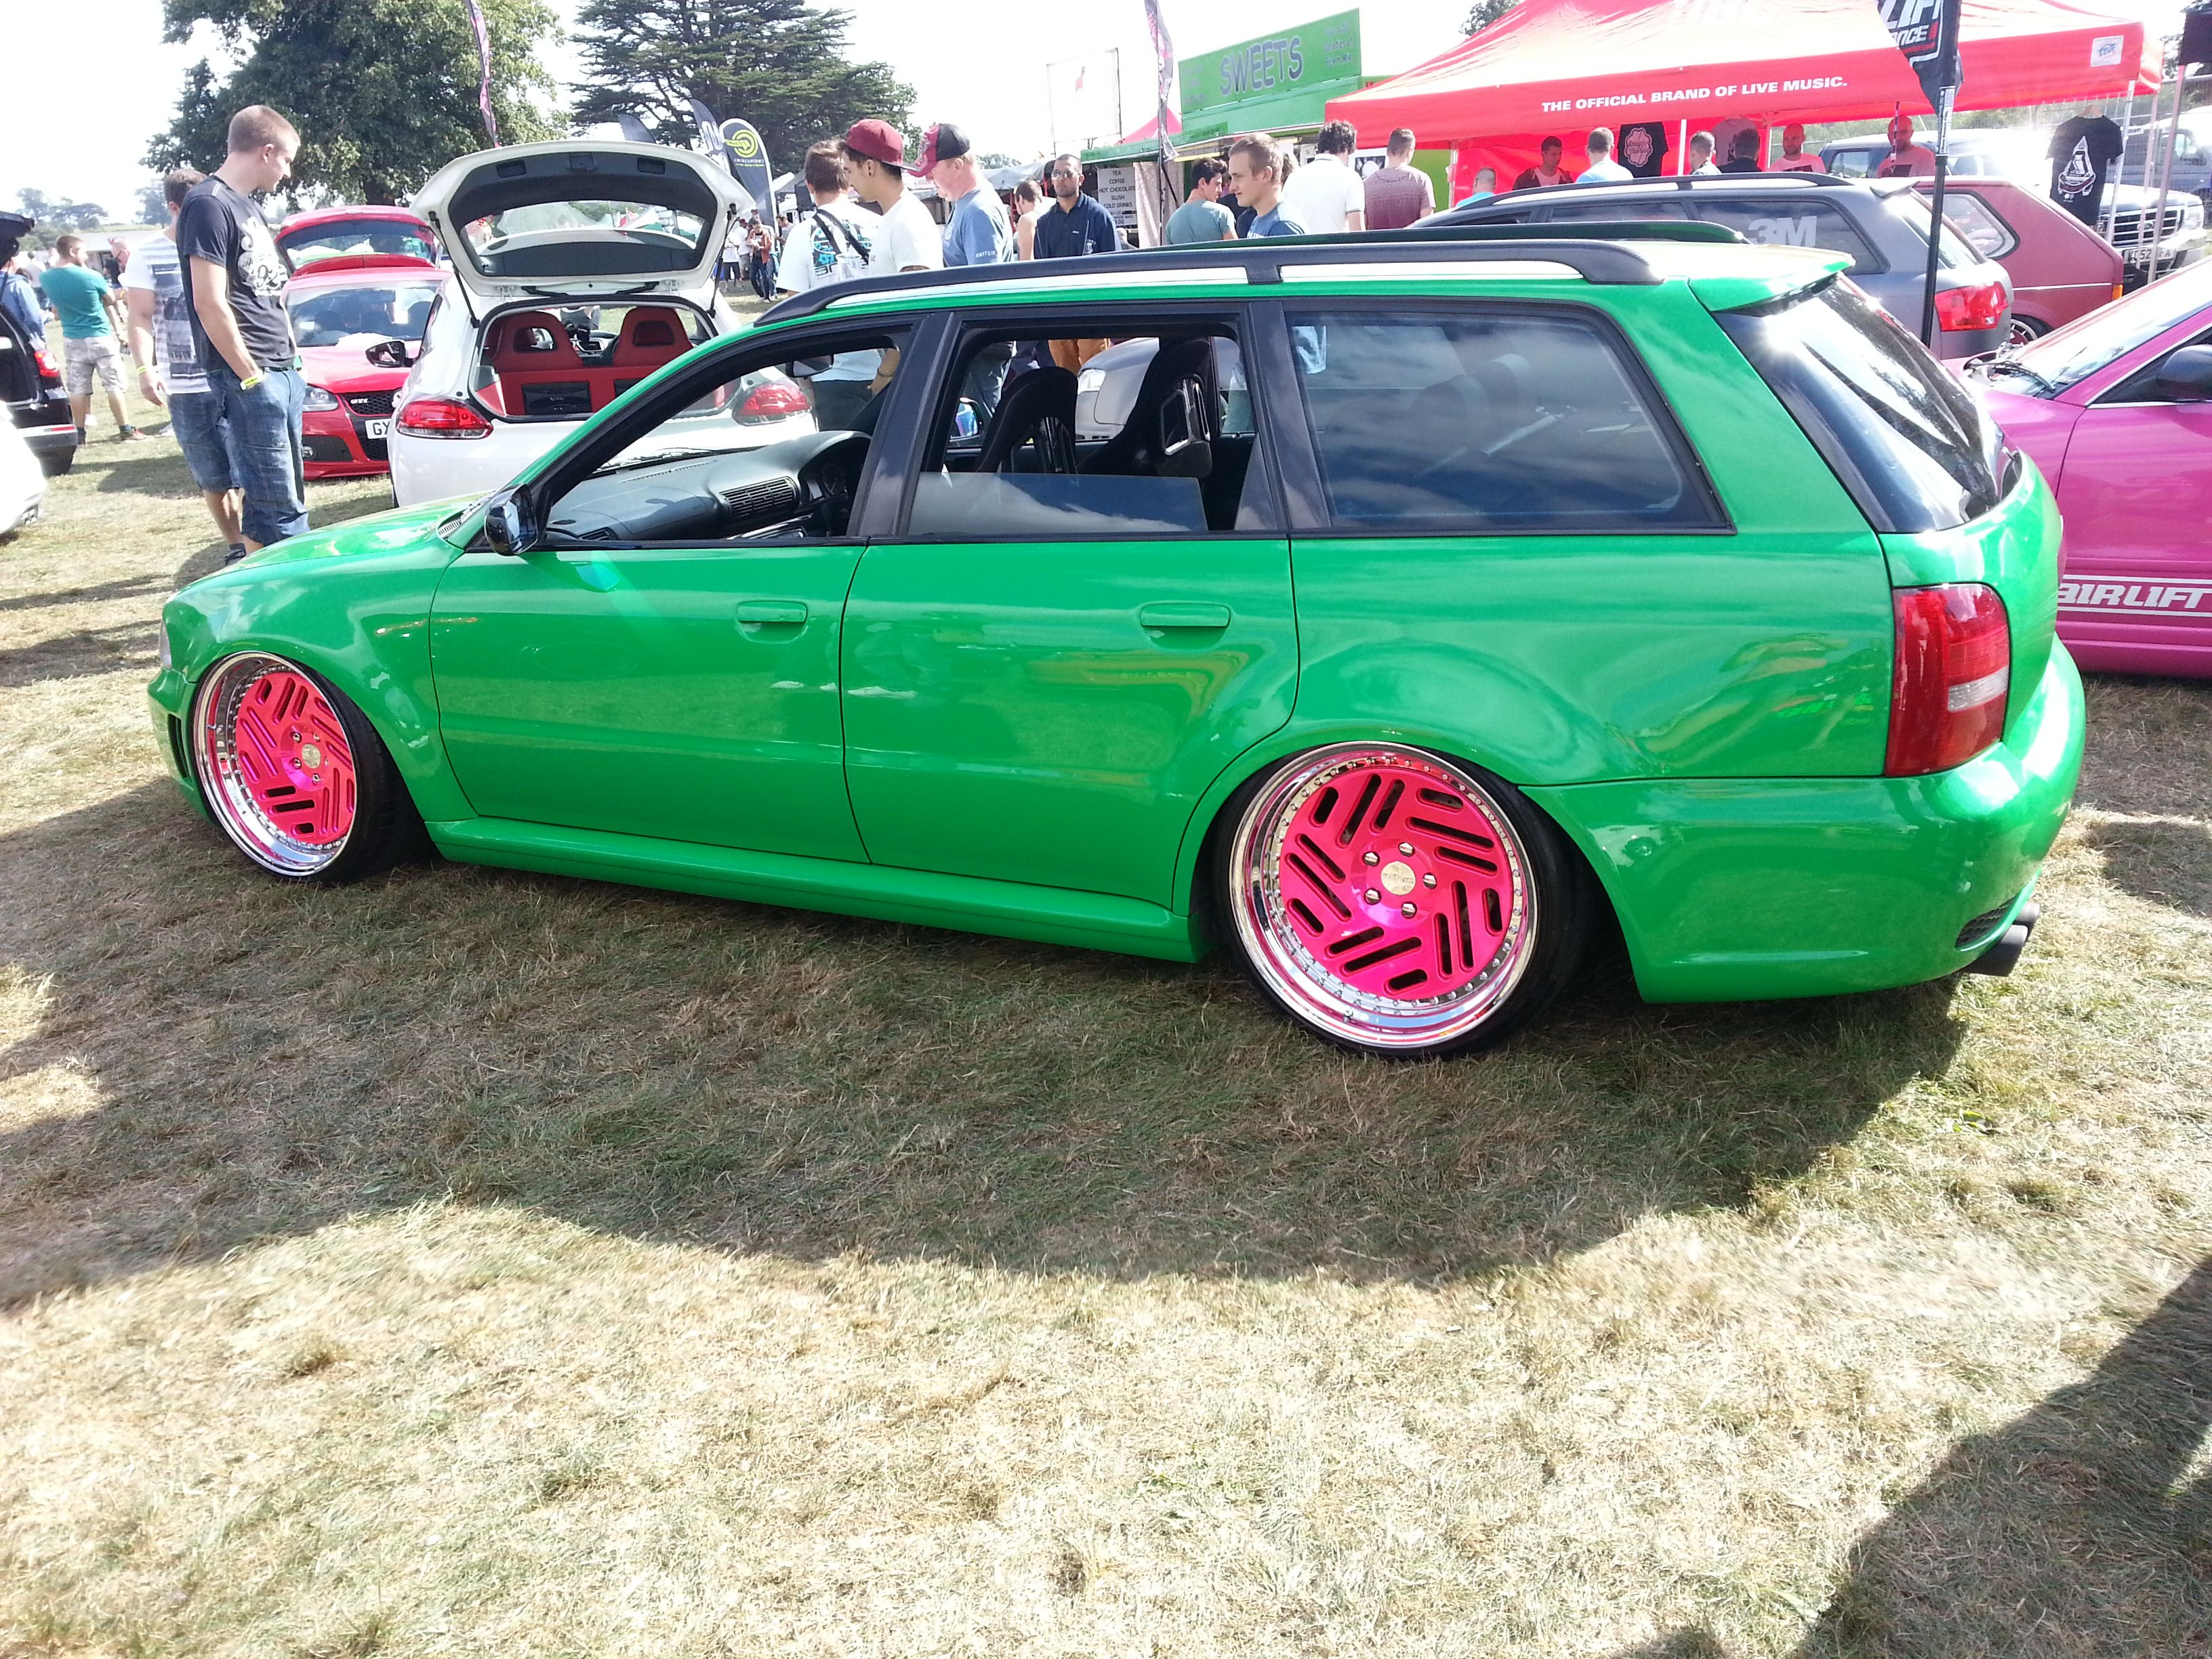 Edition 38 i went to! loved it check out these wheels, not sure on the green though!!